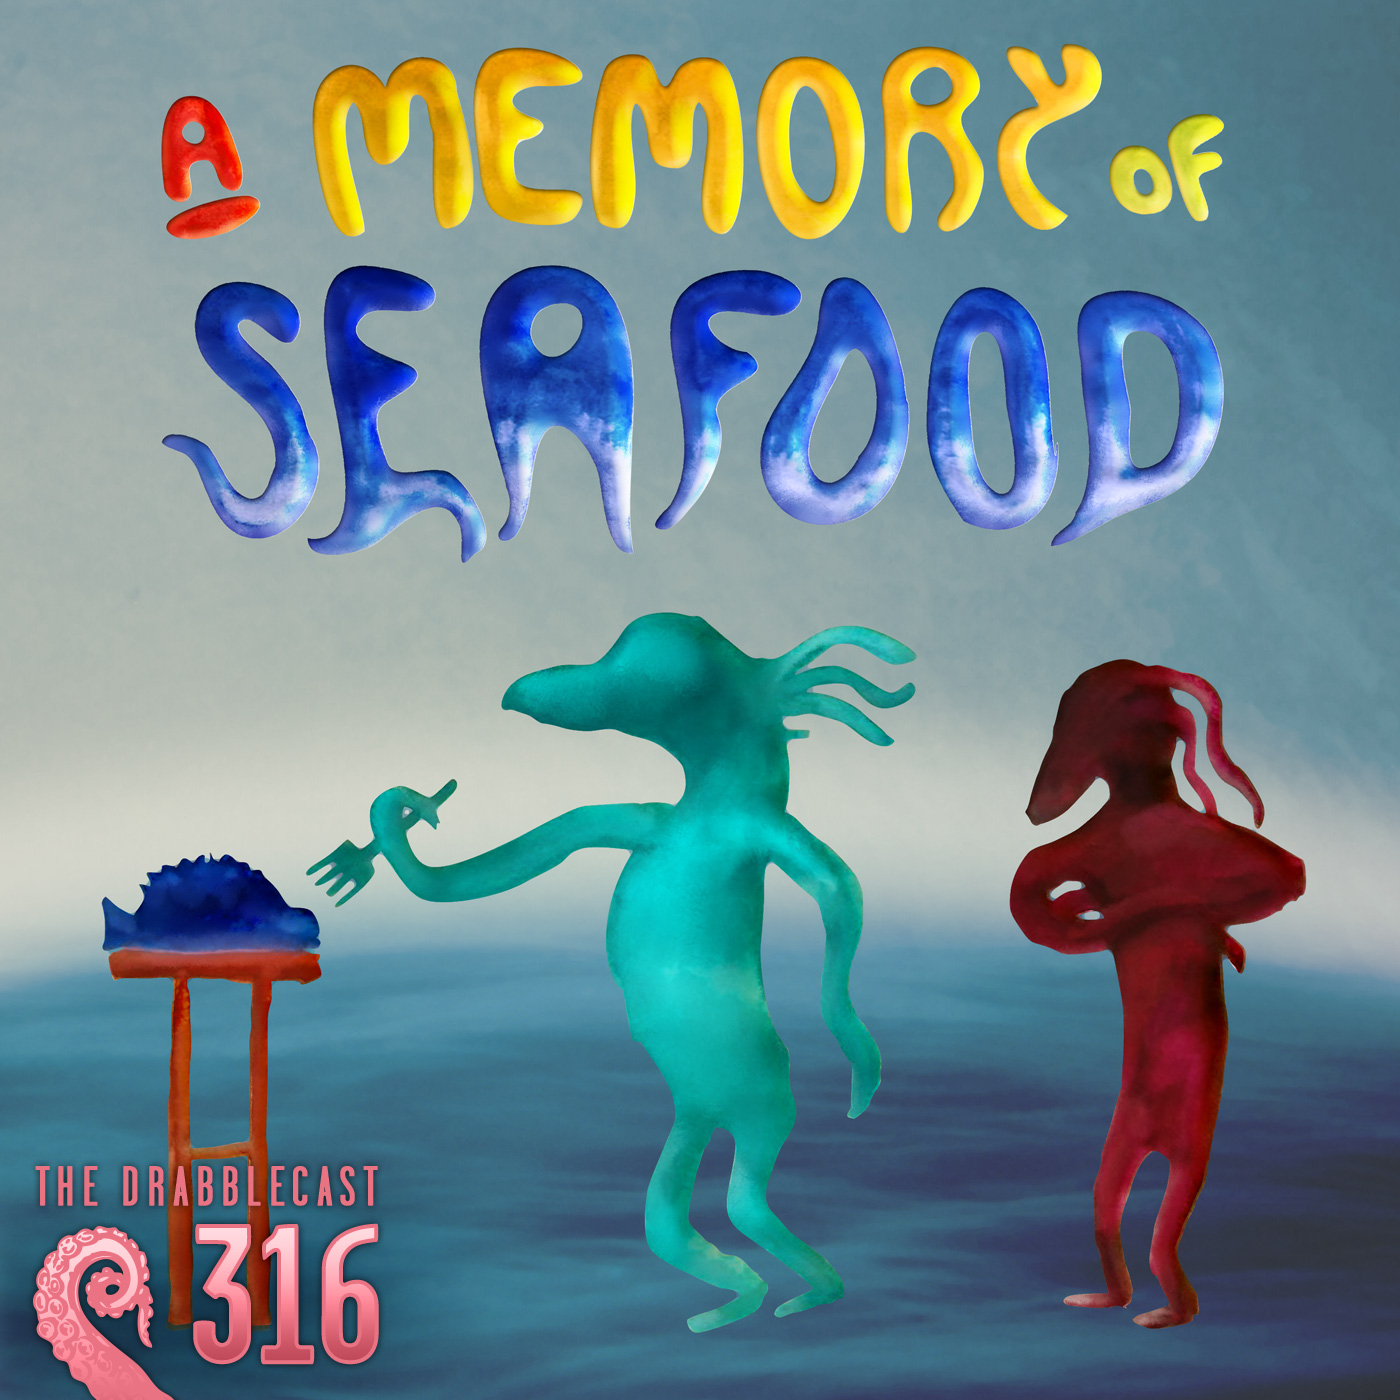 Cover for Drabblecast episode 316, A Memory of Seafood, by Kelly MaCavaney